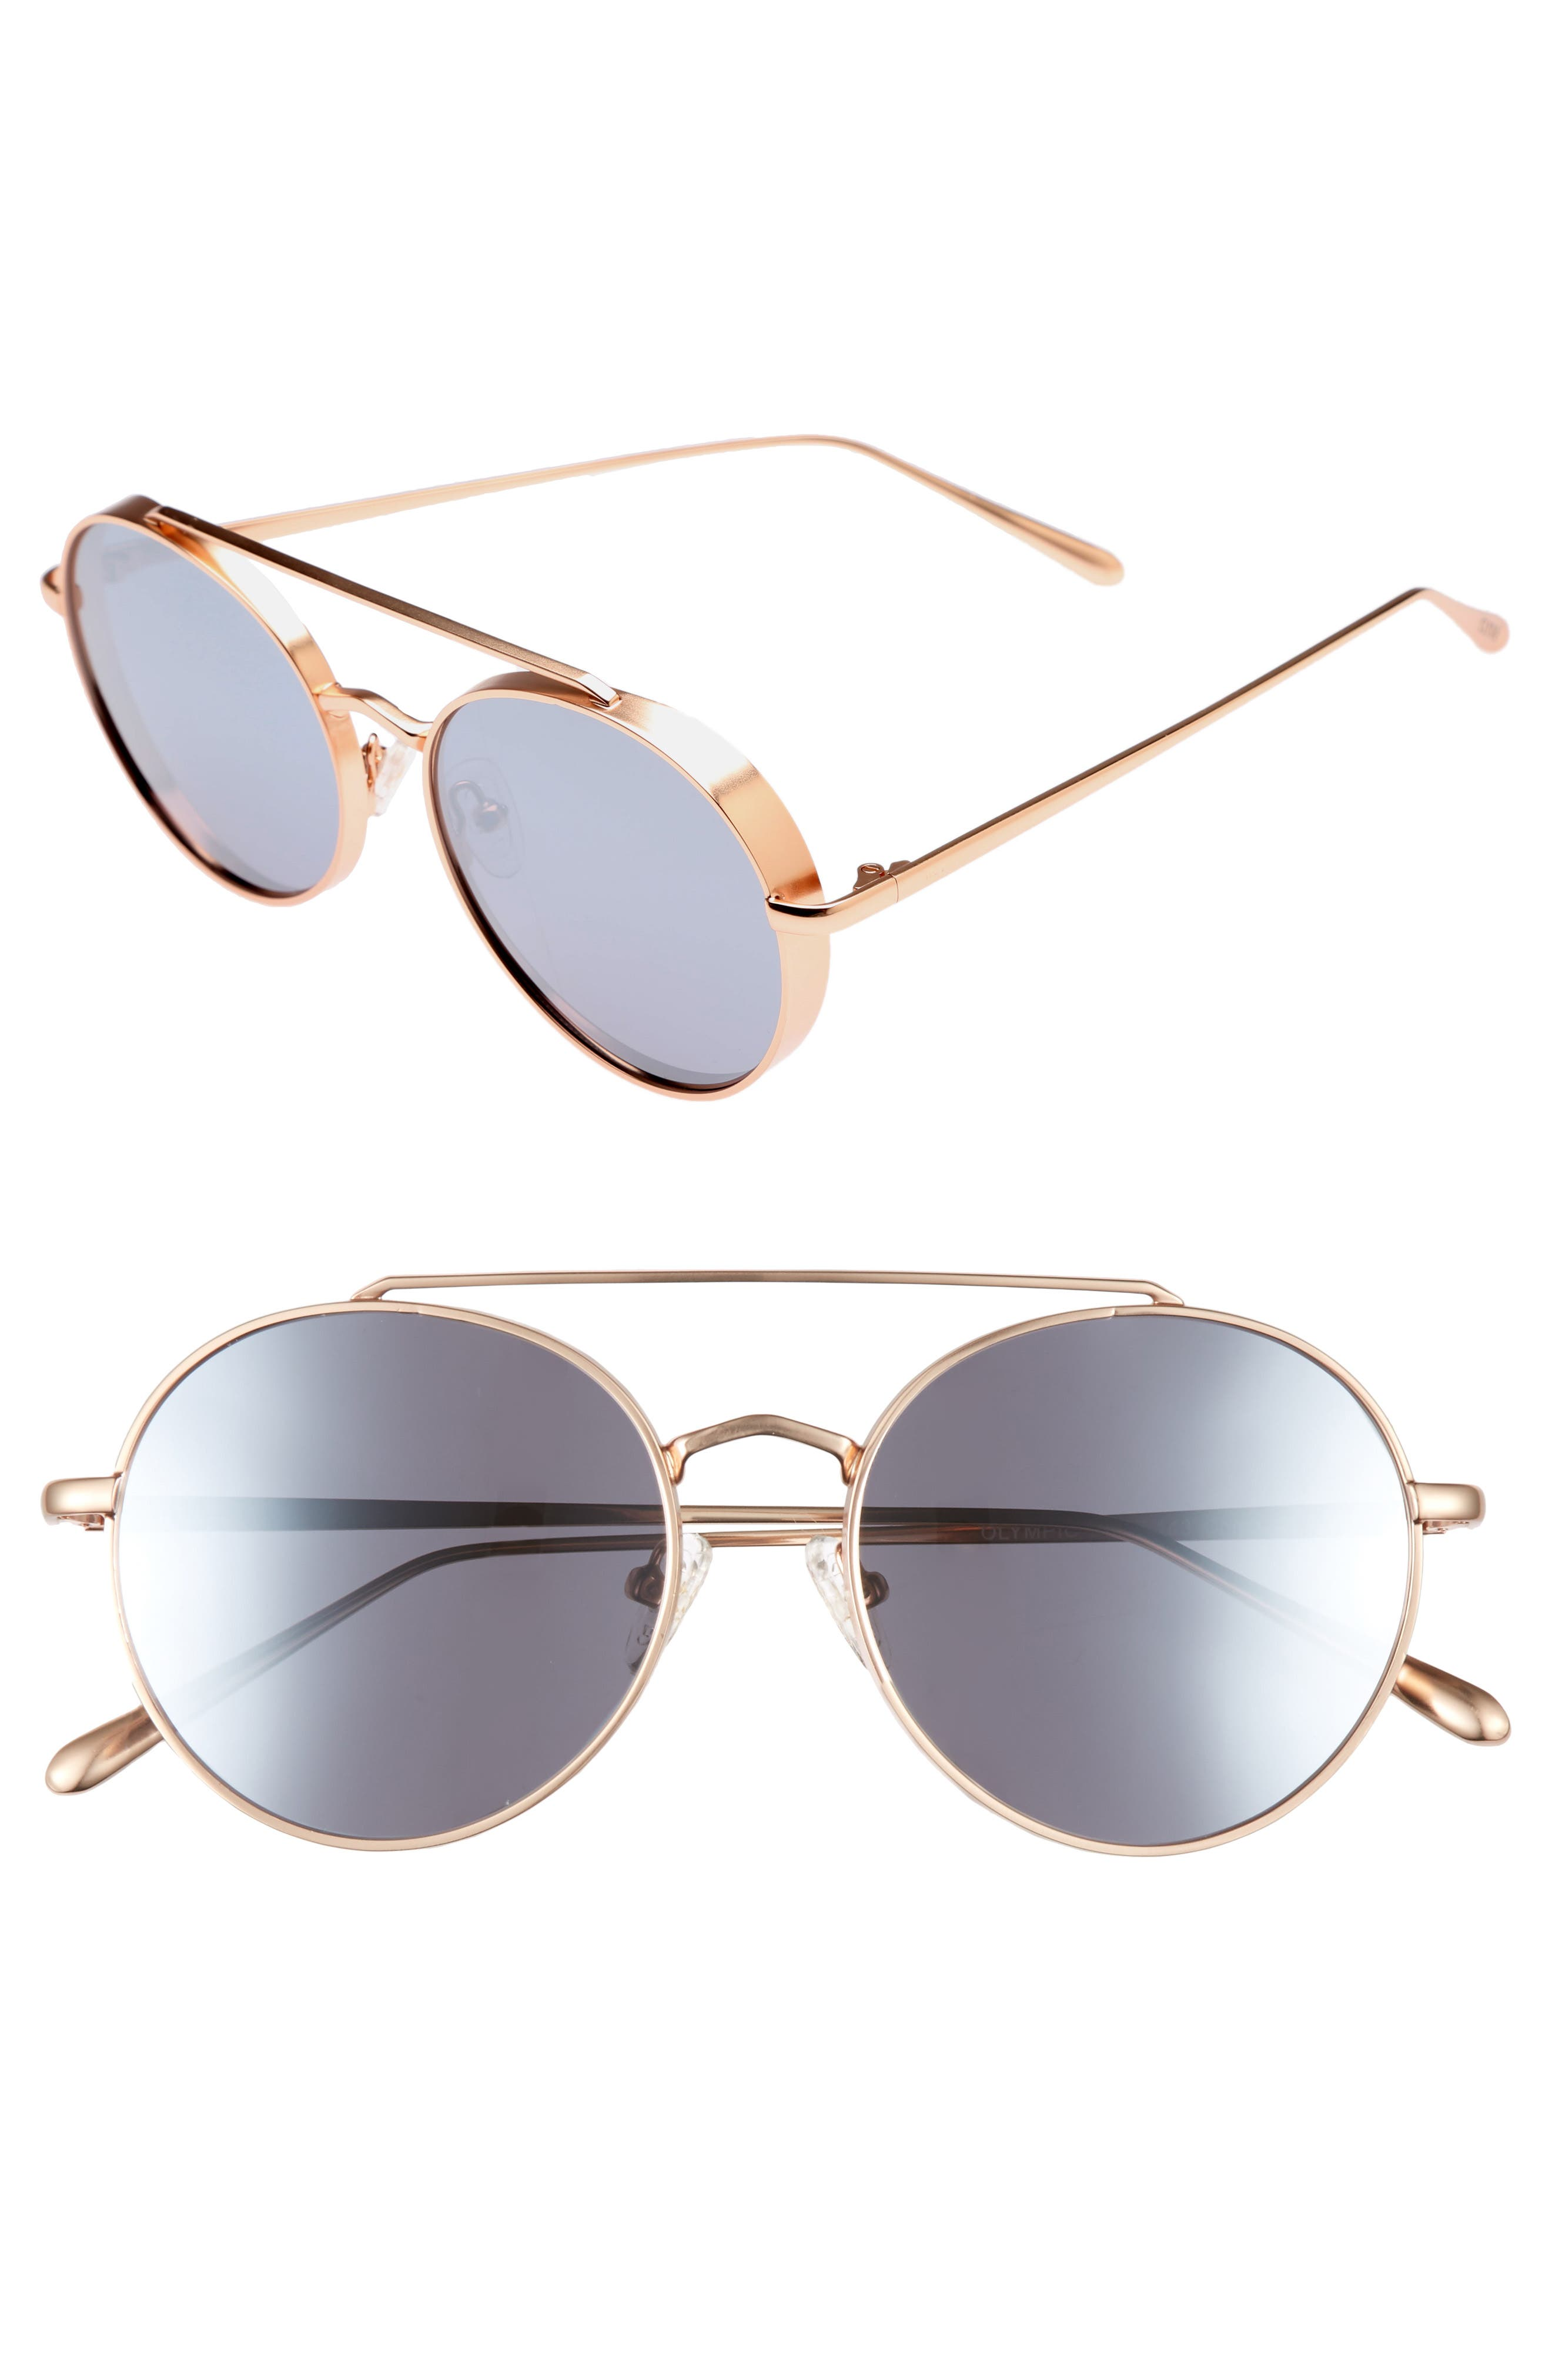 Alternate Image 1 Selected - Bonnie Clyde Olympic 53mm Polarized Aviator Sunglasses